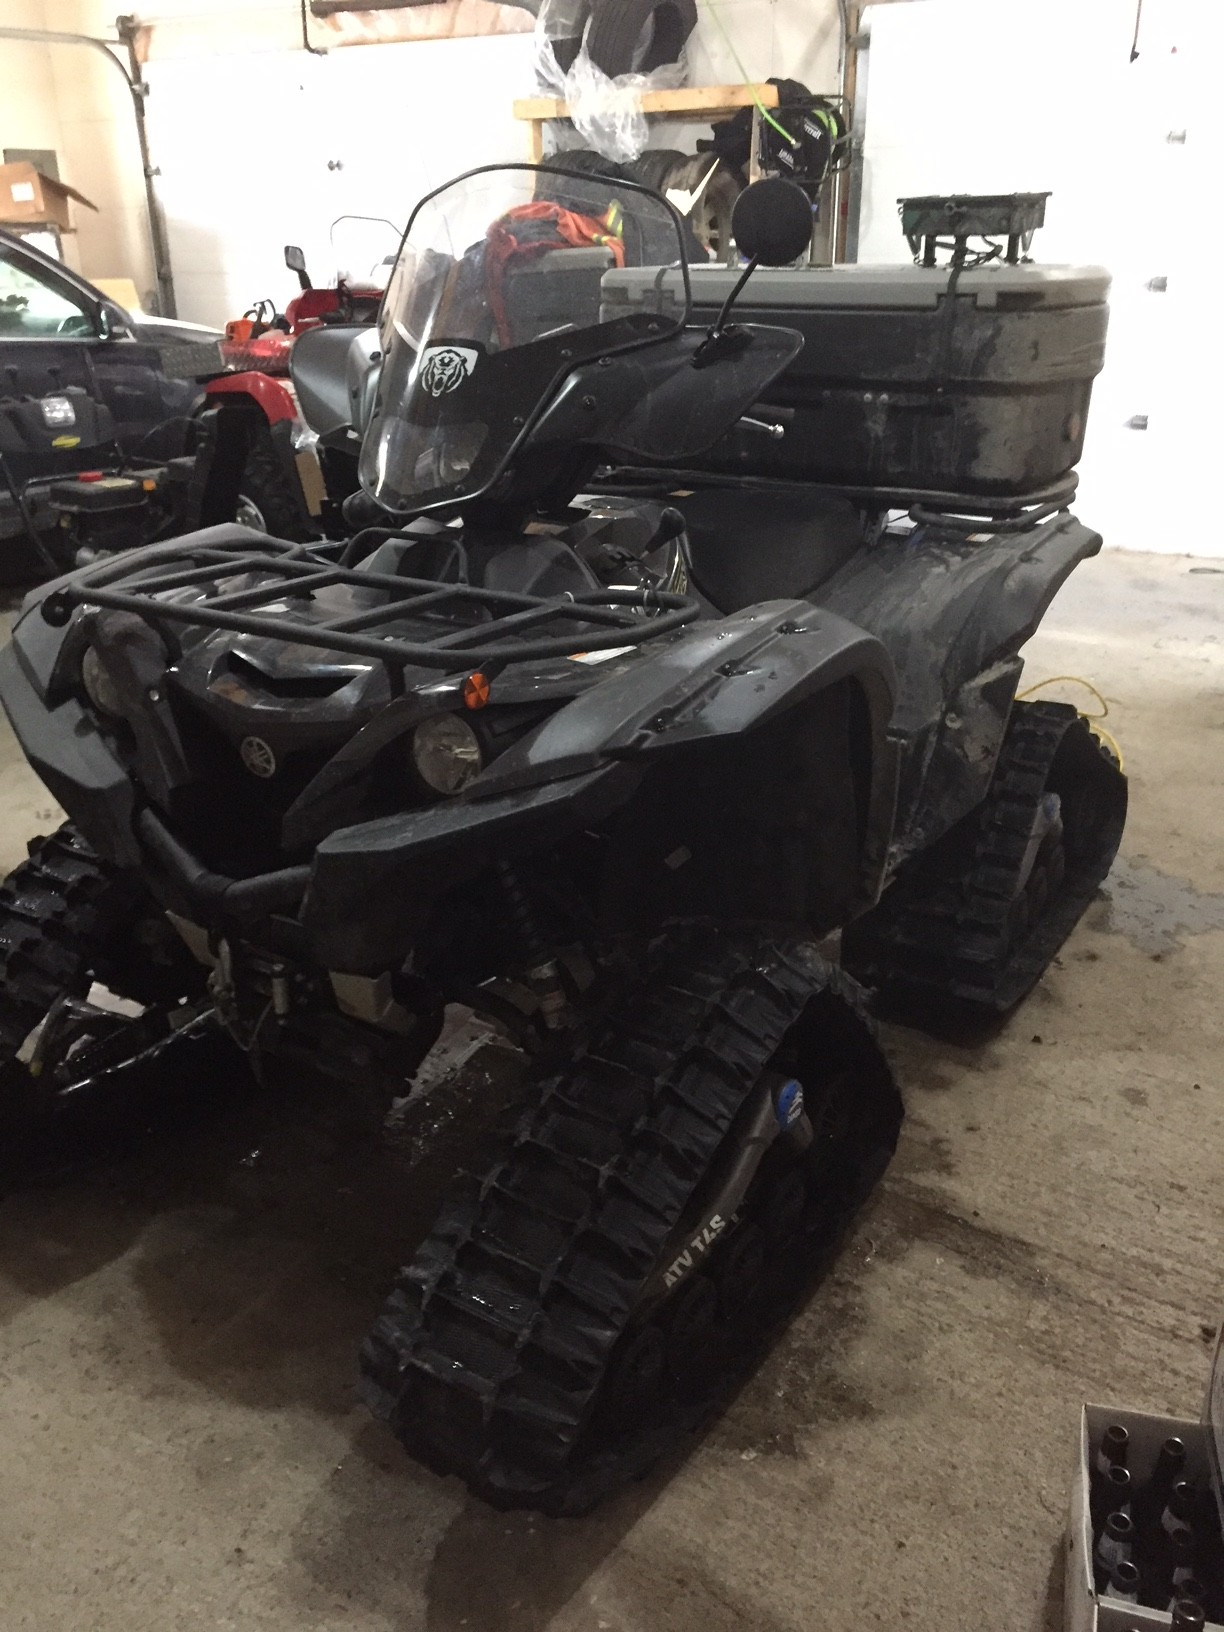 Yamaha Grizzly 700 >> T4S tracks on 2018 Grizzly - Yamaha Grizzly ATV Forum